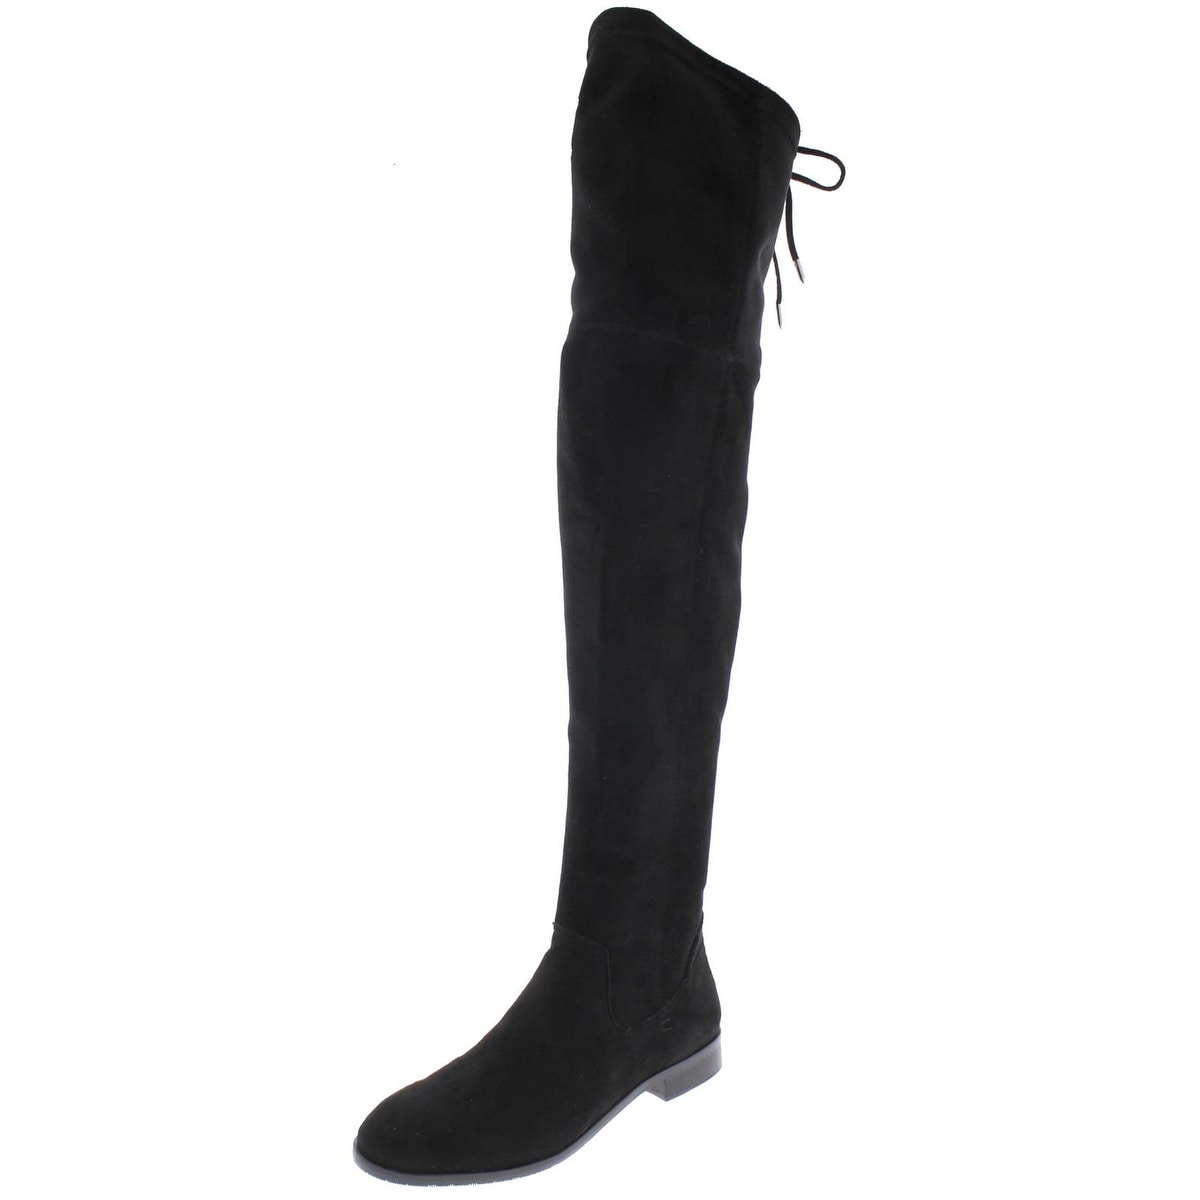 c85988b17aa Shop Dolce Vita Womens Neely Over-The-Knee Boots Faux Suede Round ...